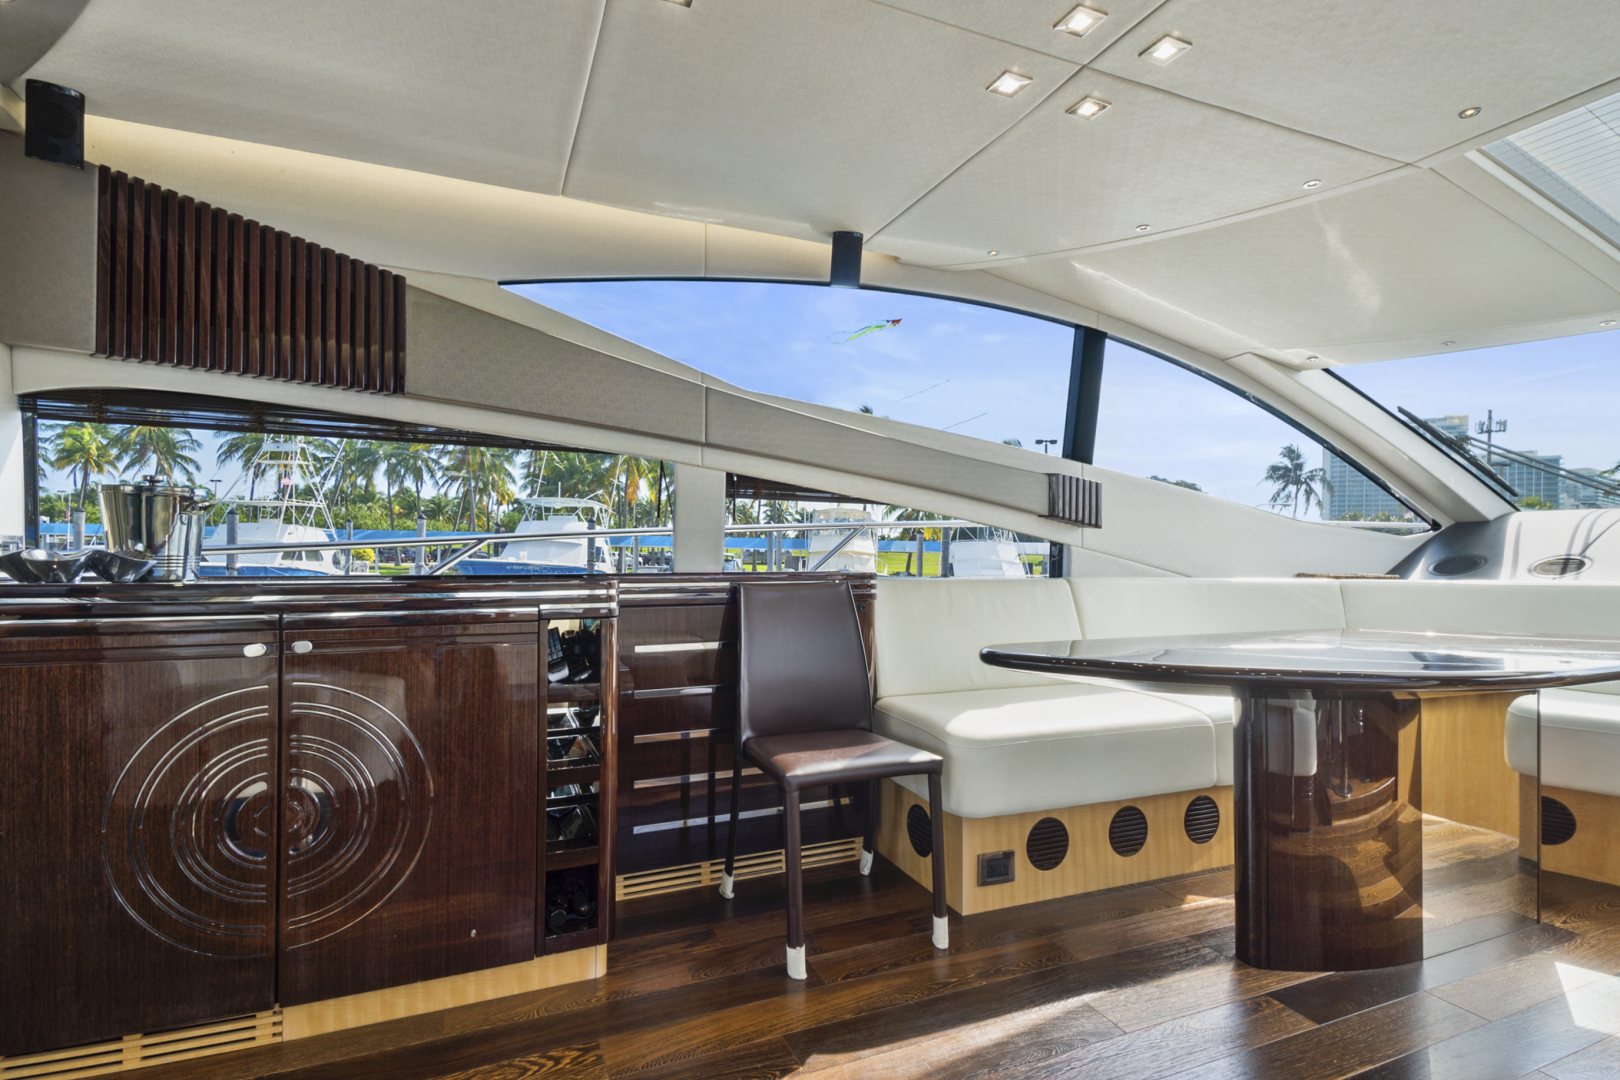 Sunseeker-68 Sport Yacht 2014-New Page Miami Beach-Florida-United States-1581202 | Thumbnail